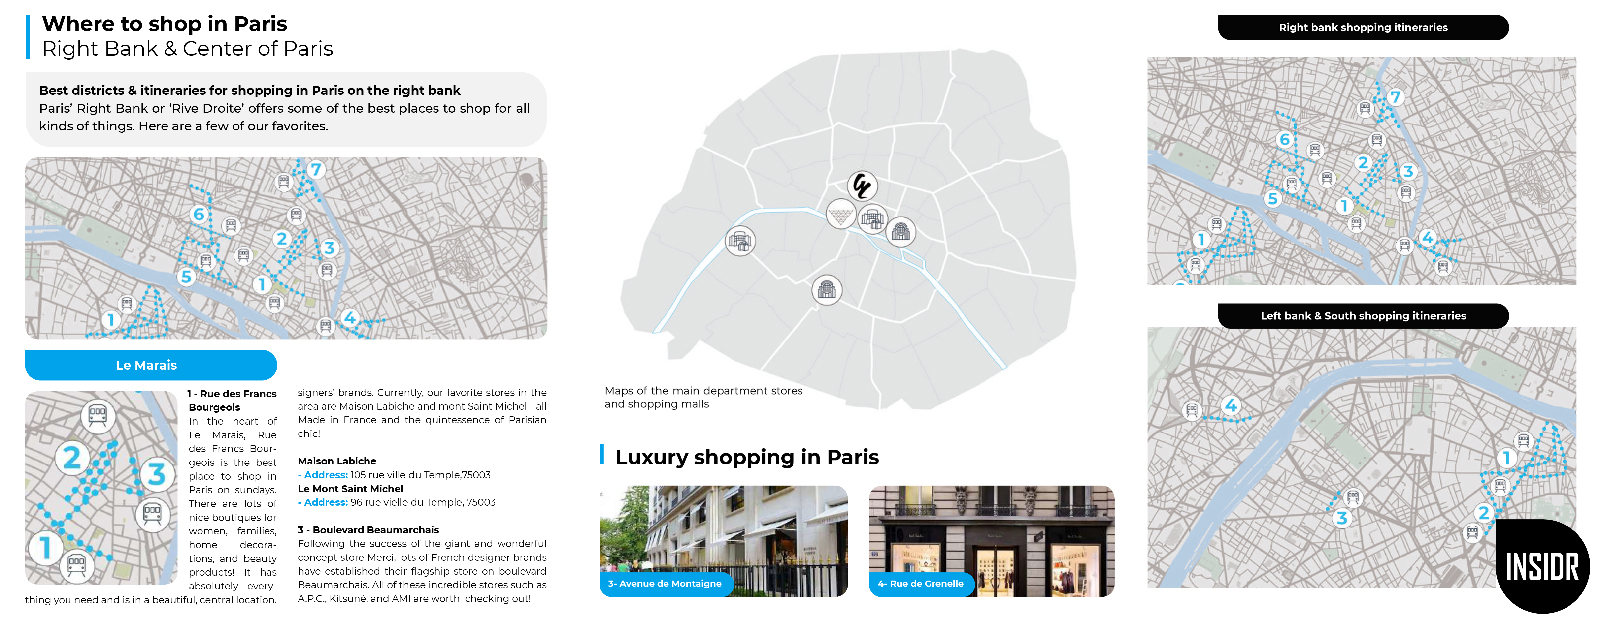 INSIDR Paris Shopping Guide - Best Stores & Neighbourhood For Shopping In Paris